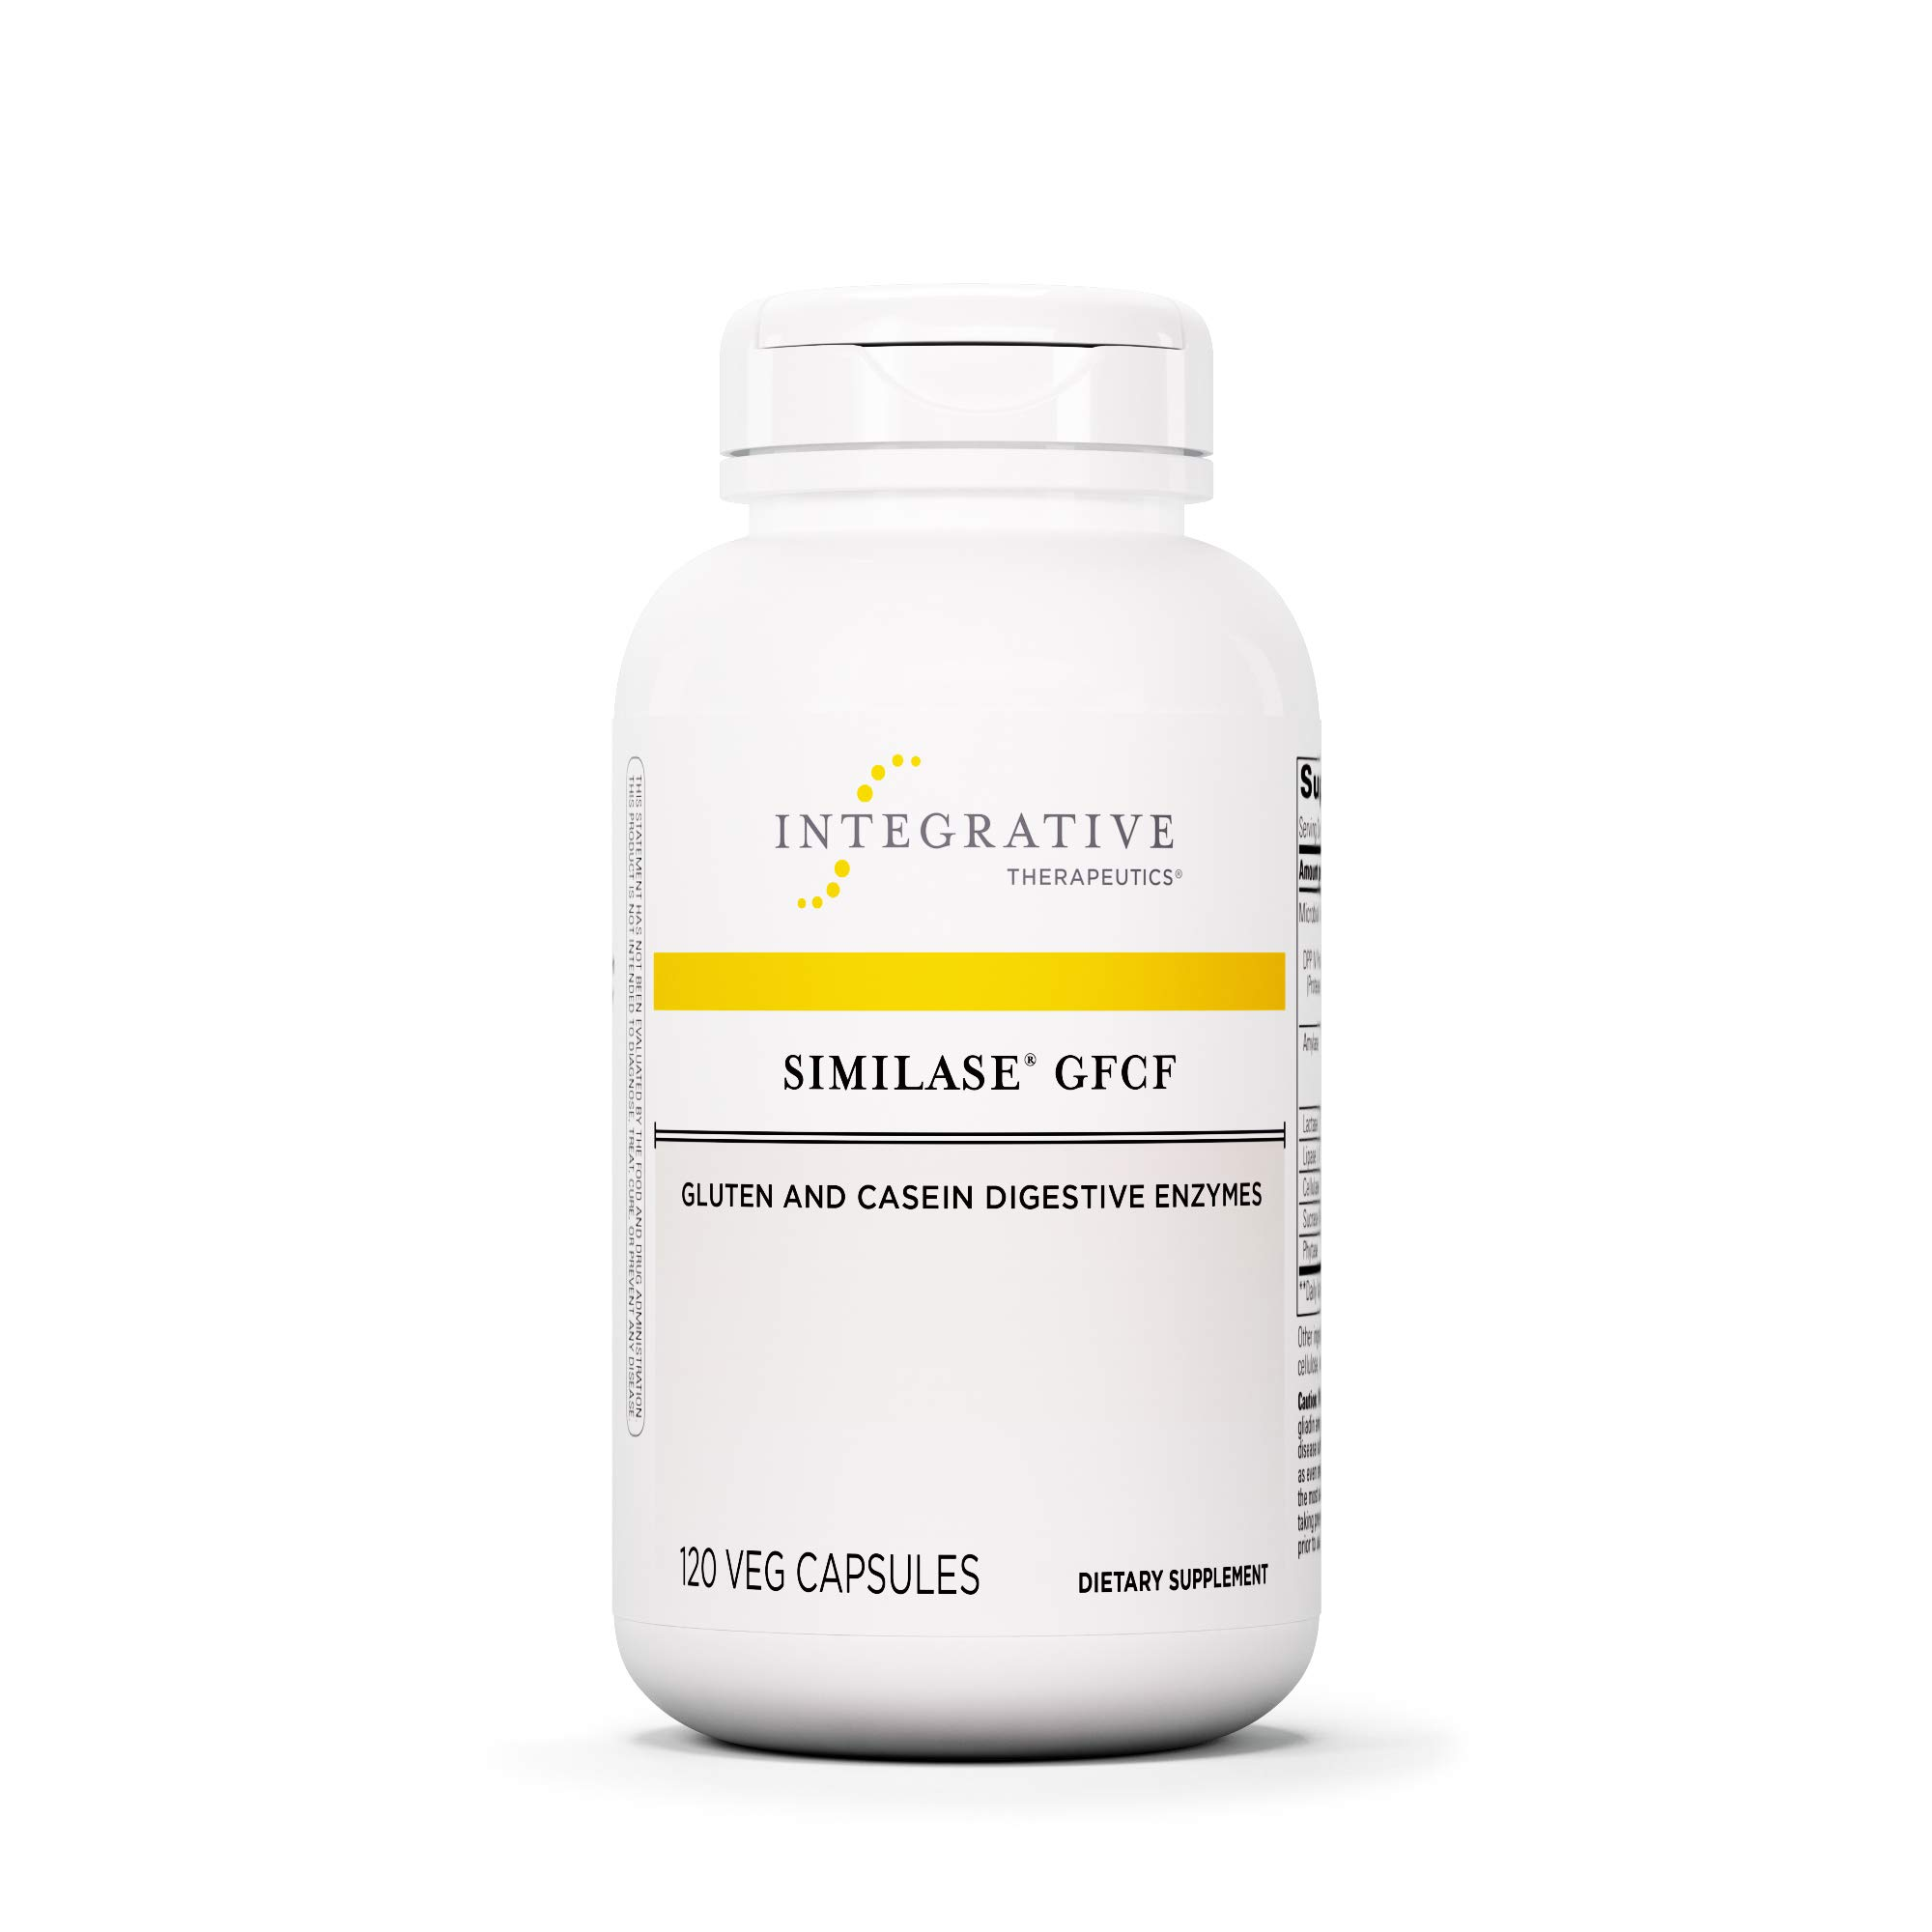 Integrative Therapeutics - Similase GFCF - Gluten Digestive Enzyme - Supports Breakdown of Gluten and/or Casein/Dairy* - Reduces Occasional Gas and Bloating* - Vegan and Gluten Free - 120 Capsules by Integrative Therapeutics